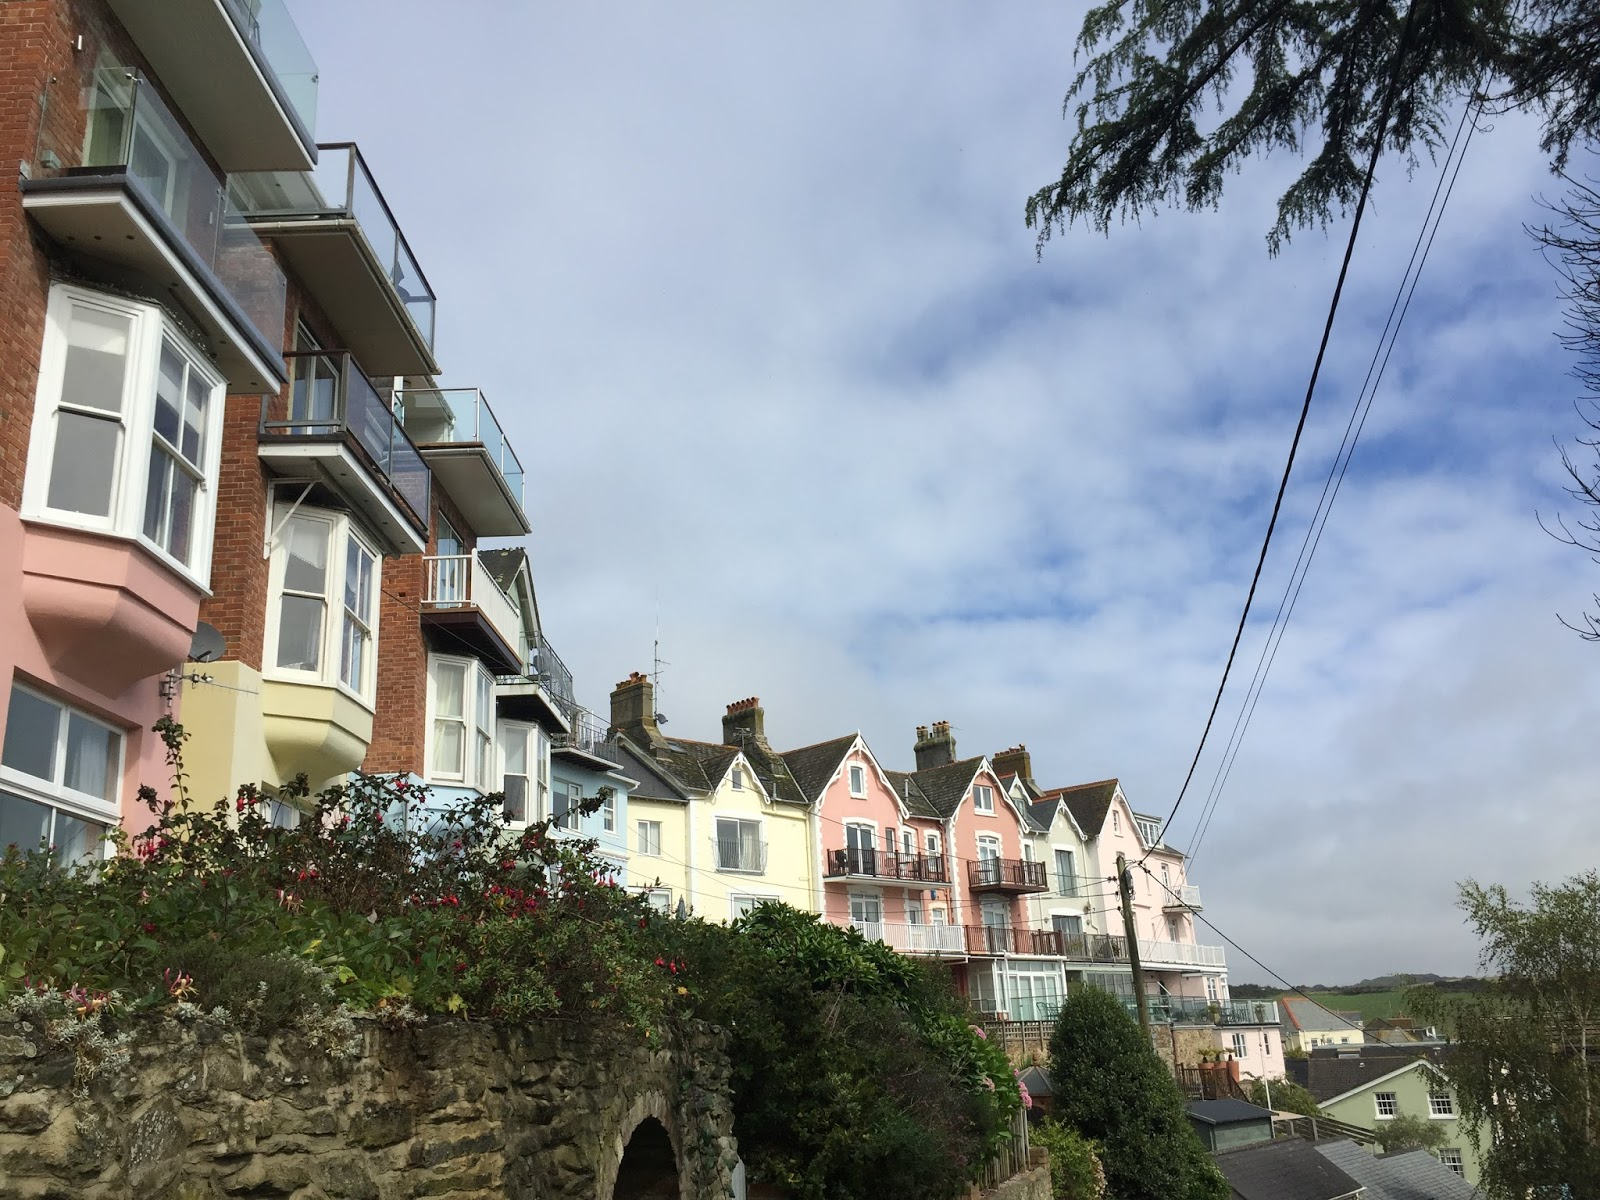 Salcombe pastel houses